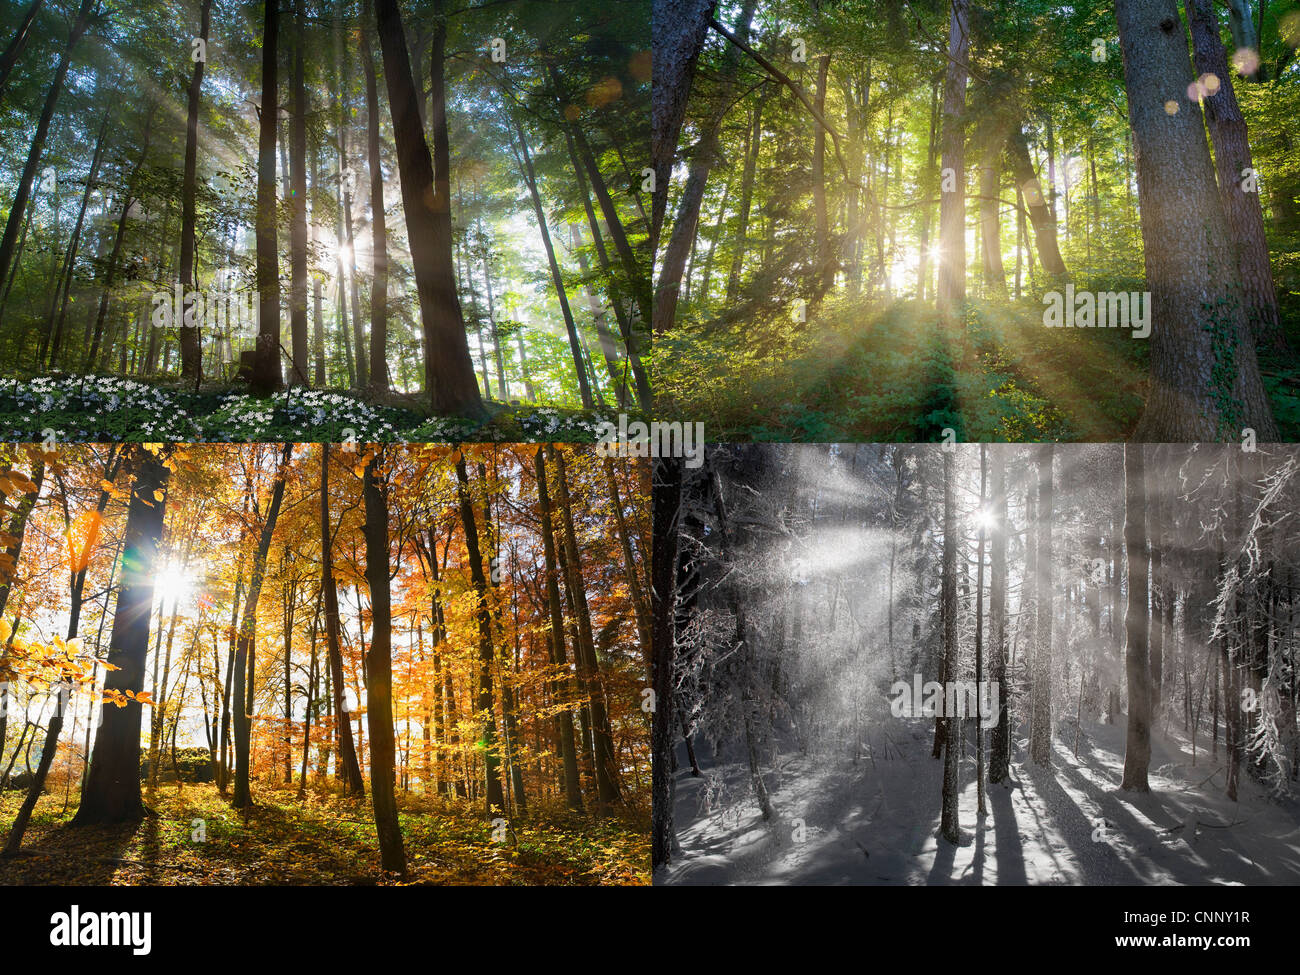 Views of four seasons of forest - Stock Image